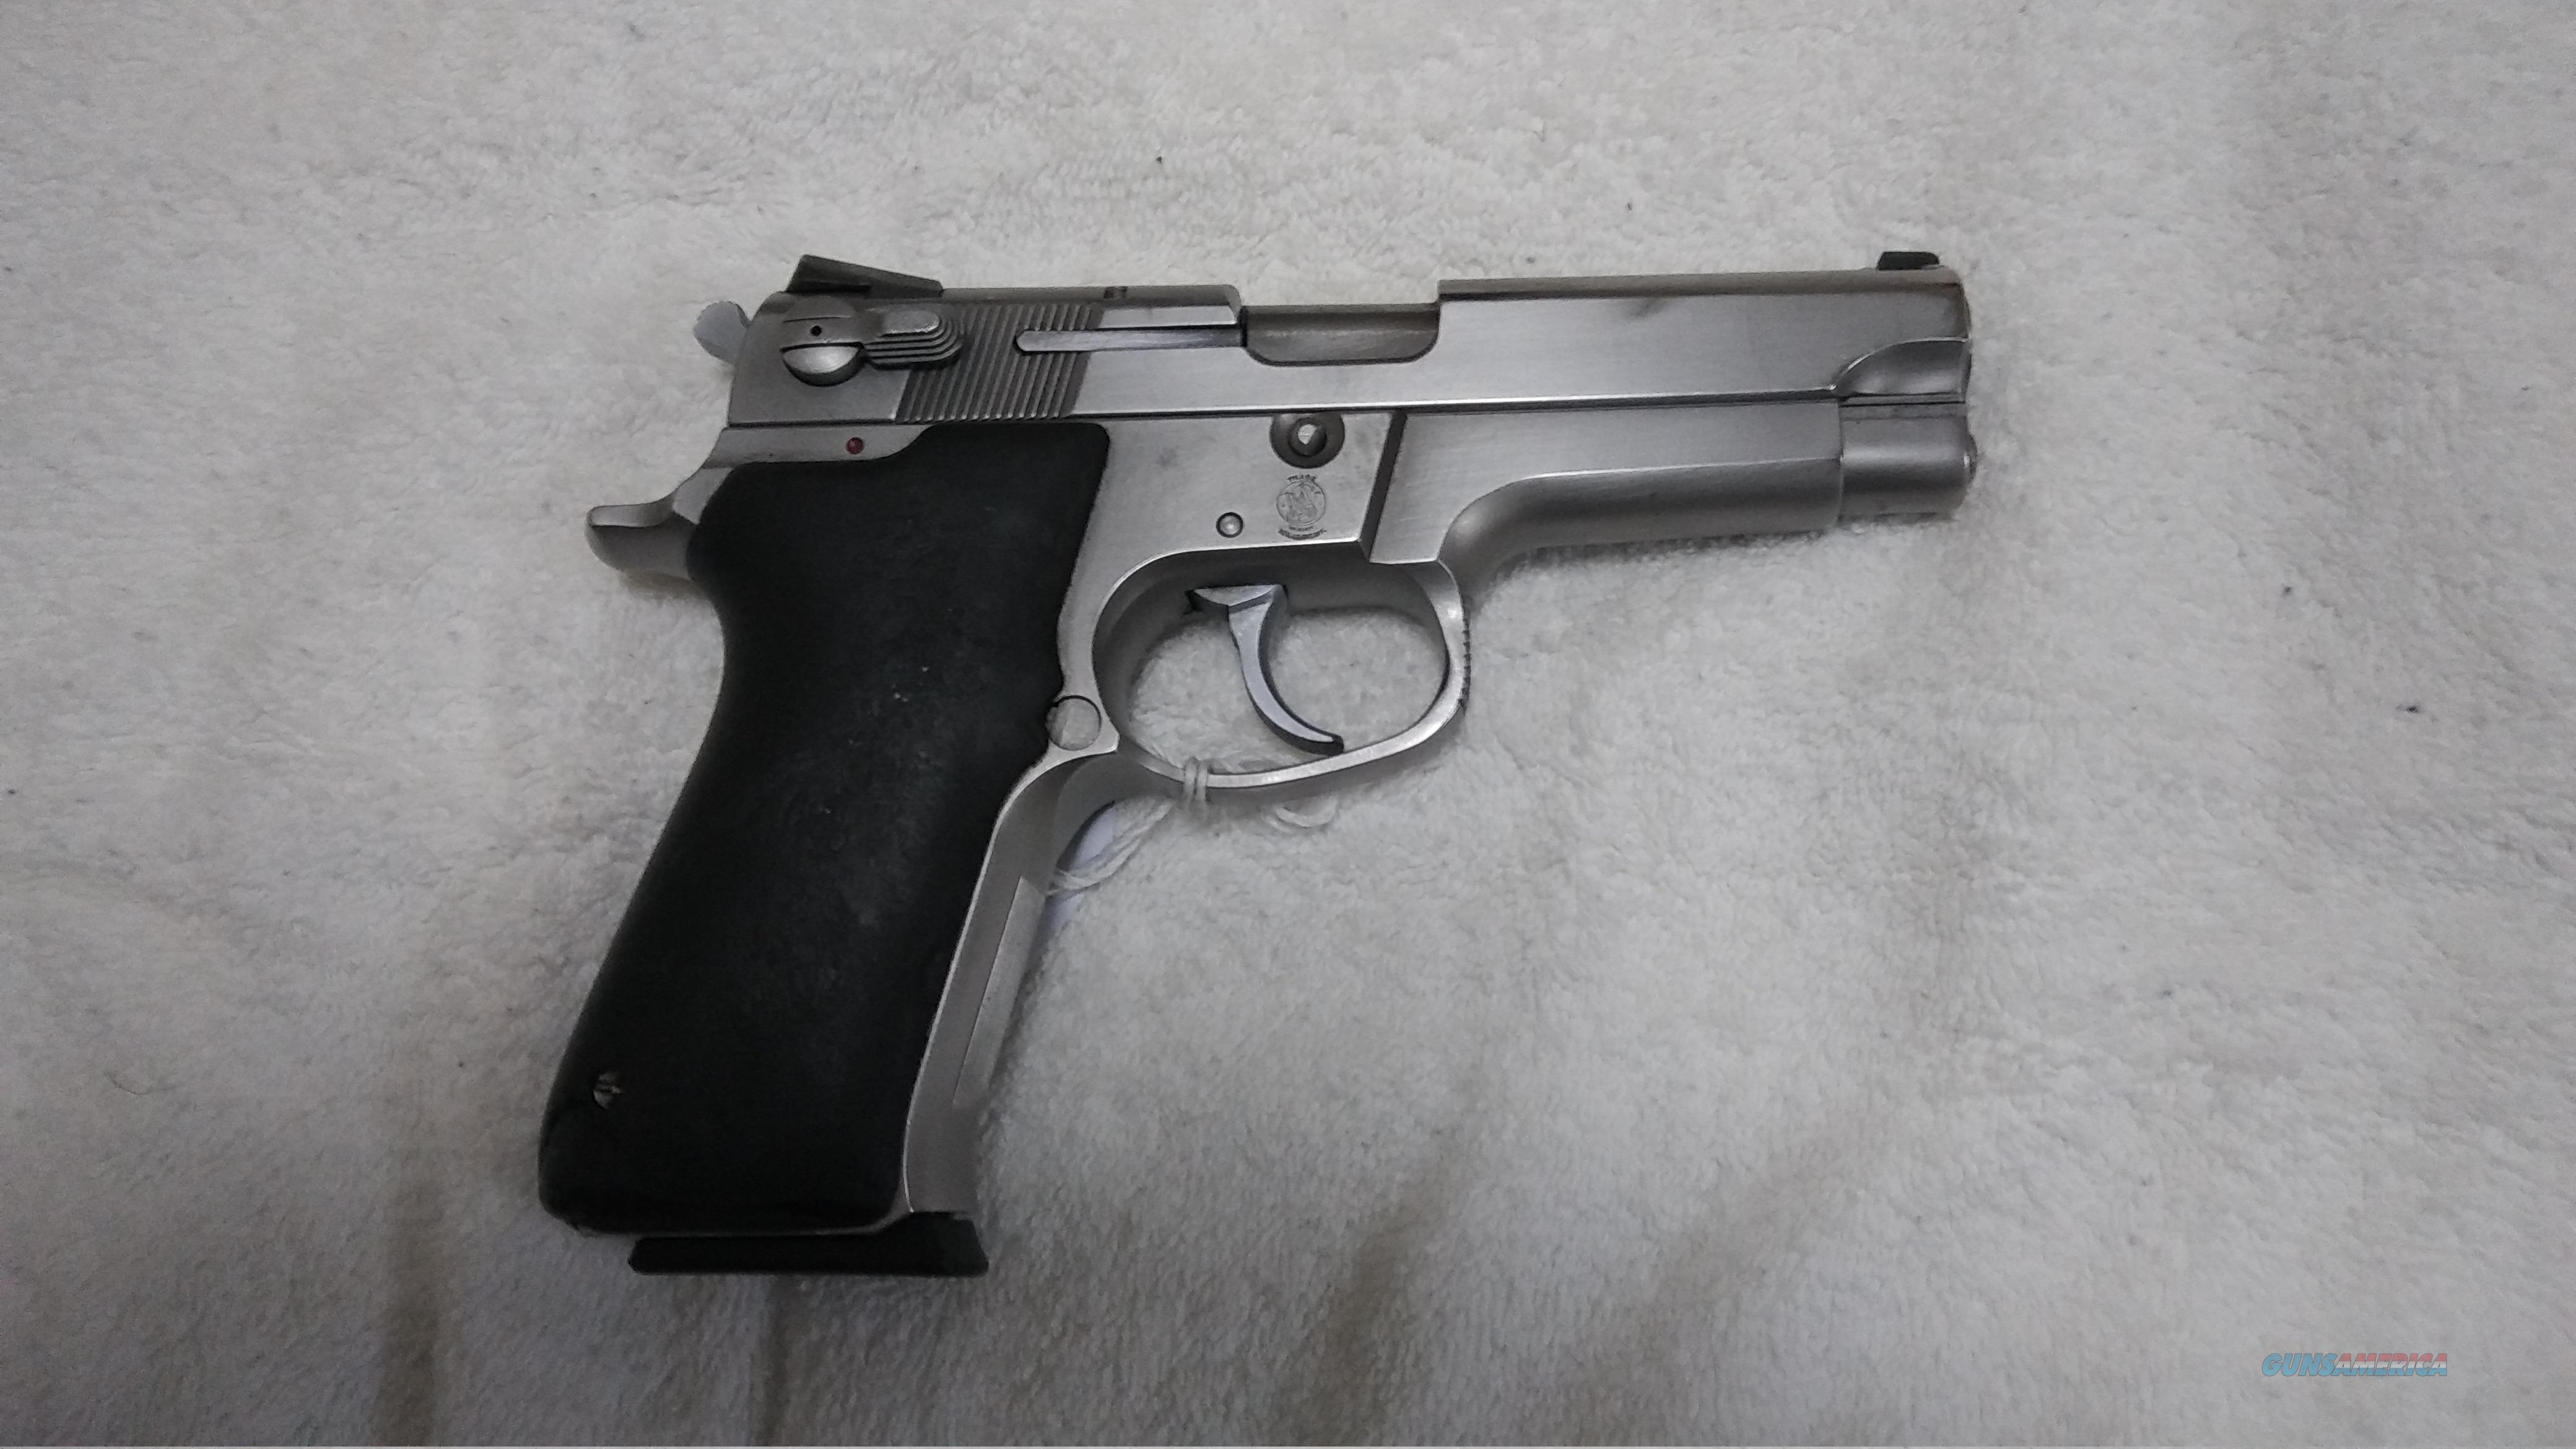 Smith & Wesson 9 mm model 5906 SS 15 shot  Guns > Pistols > Smith & Wesson Pistols - Autos > Steel Frame